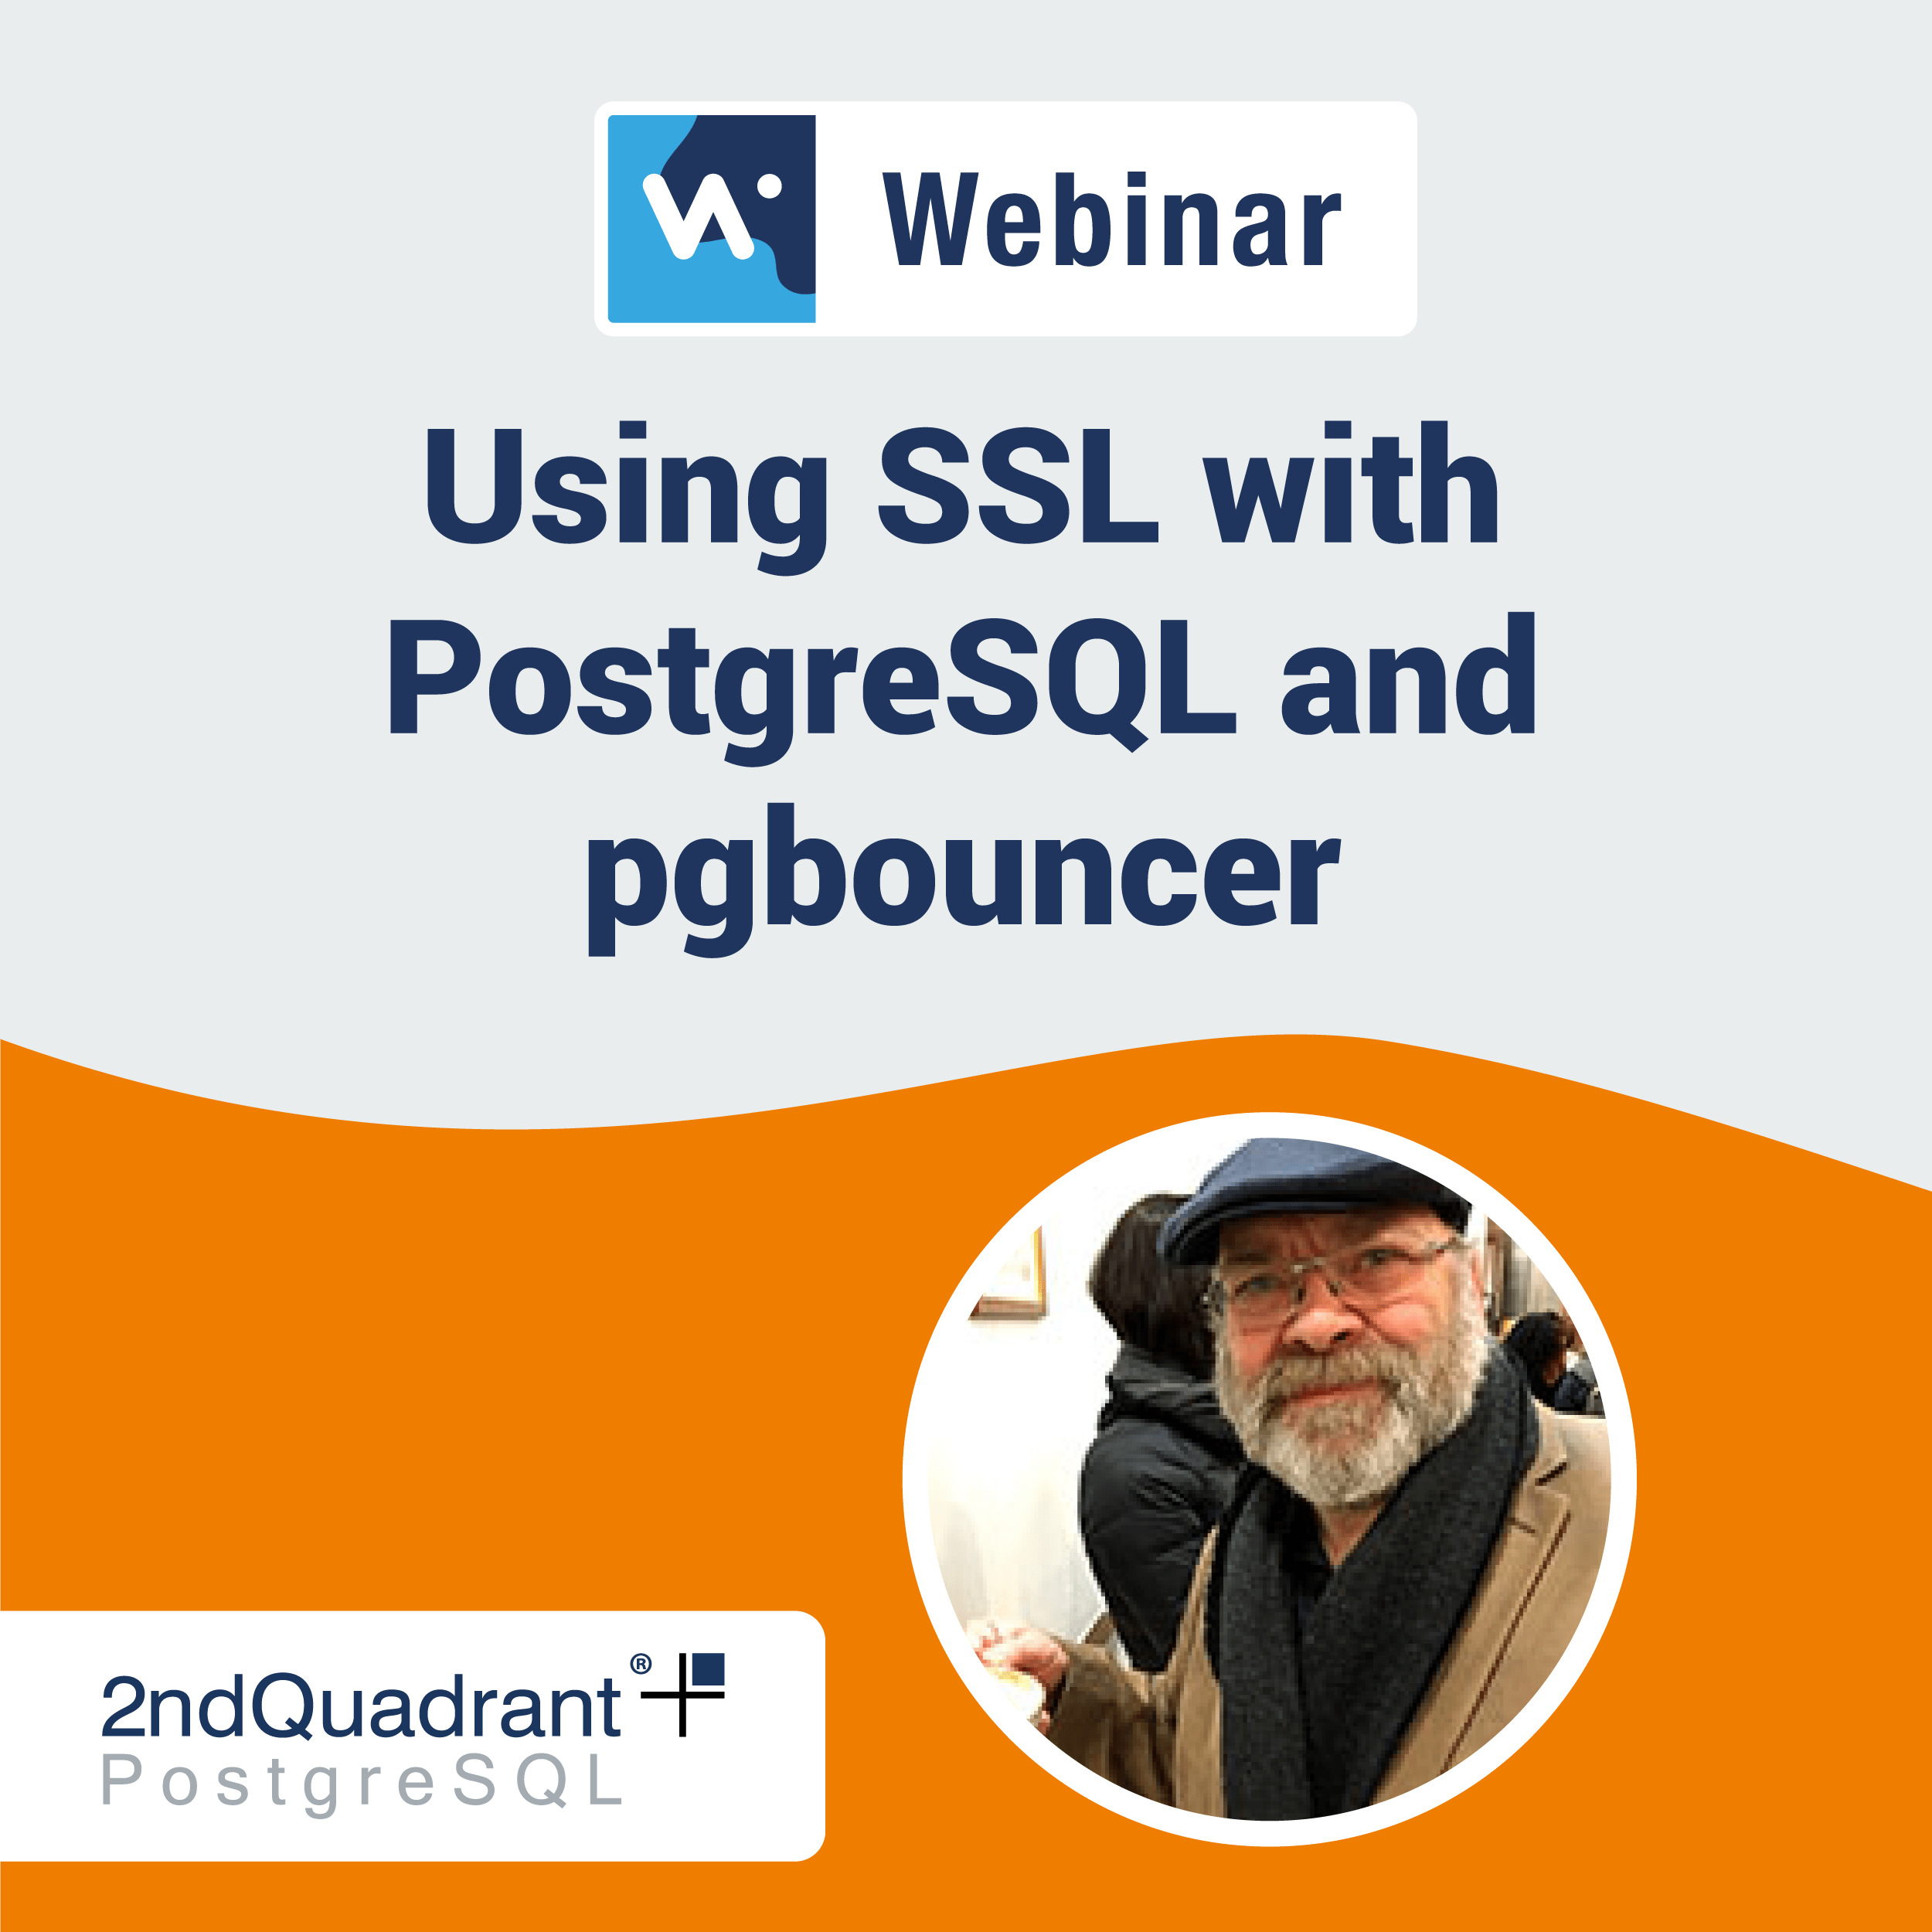 Webinar: Using SSL with PostgreSQL and pgbouncer